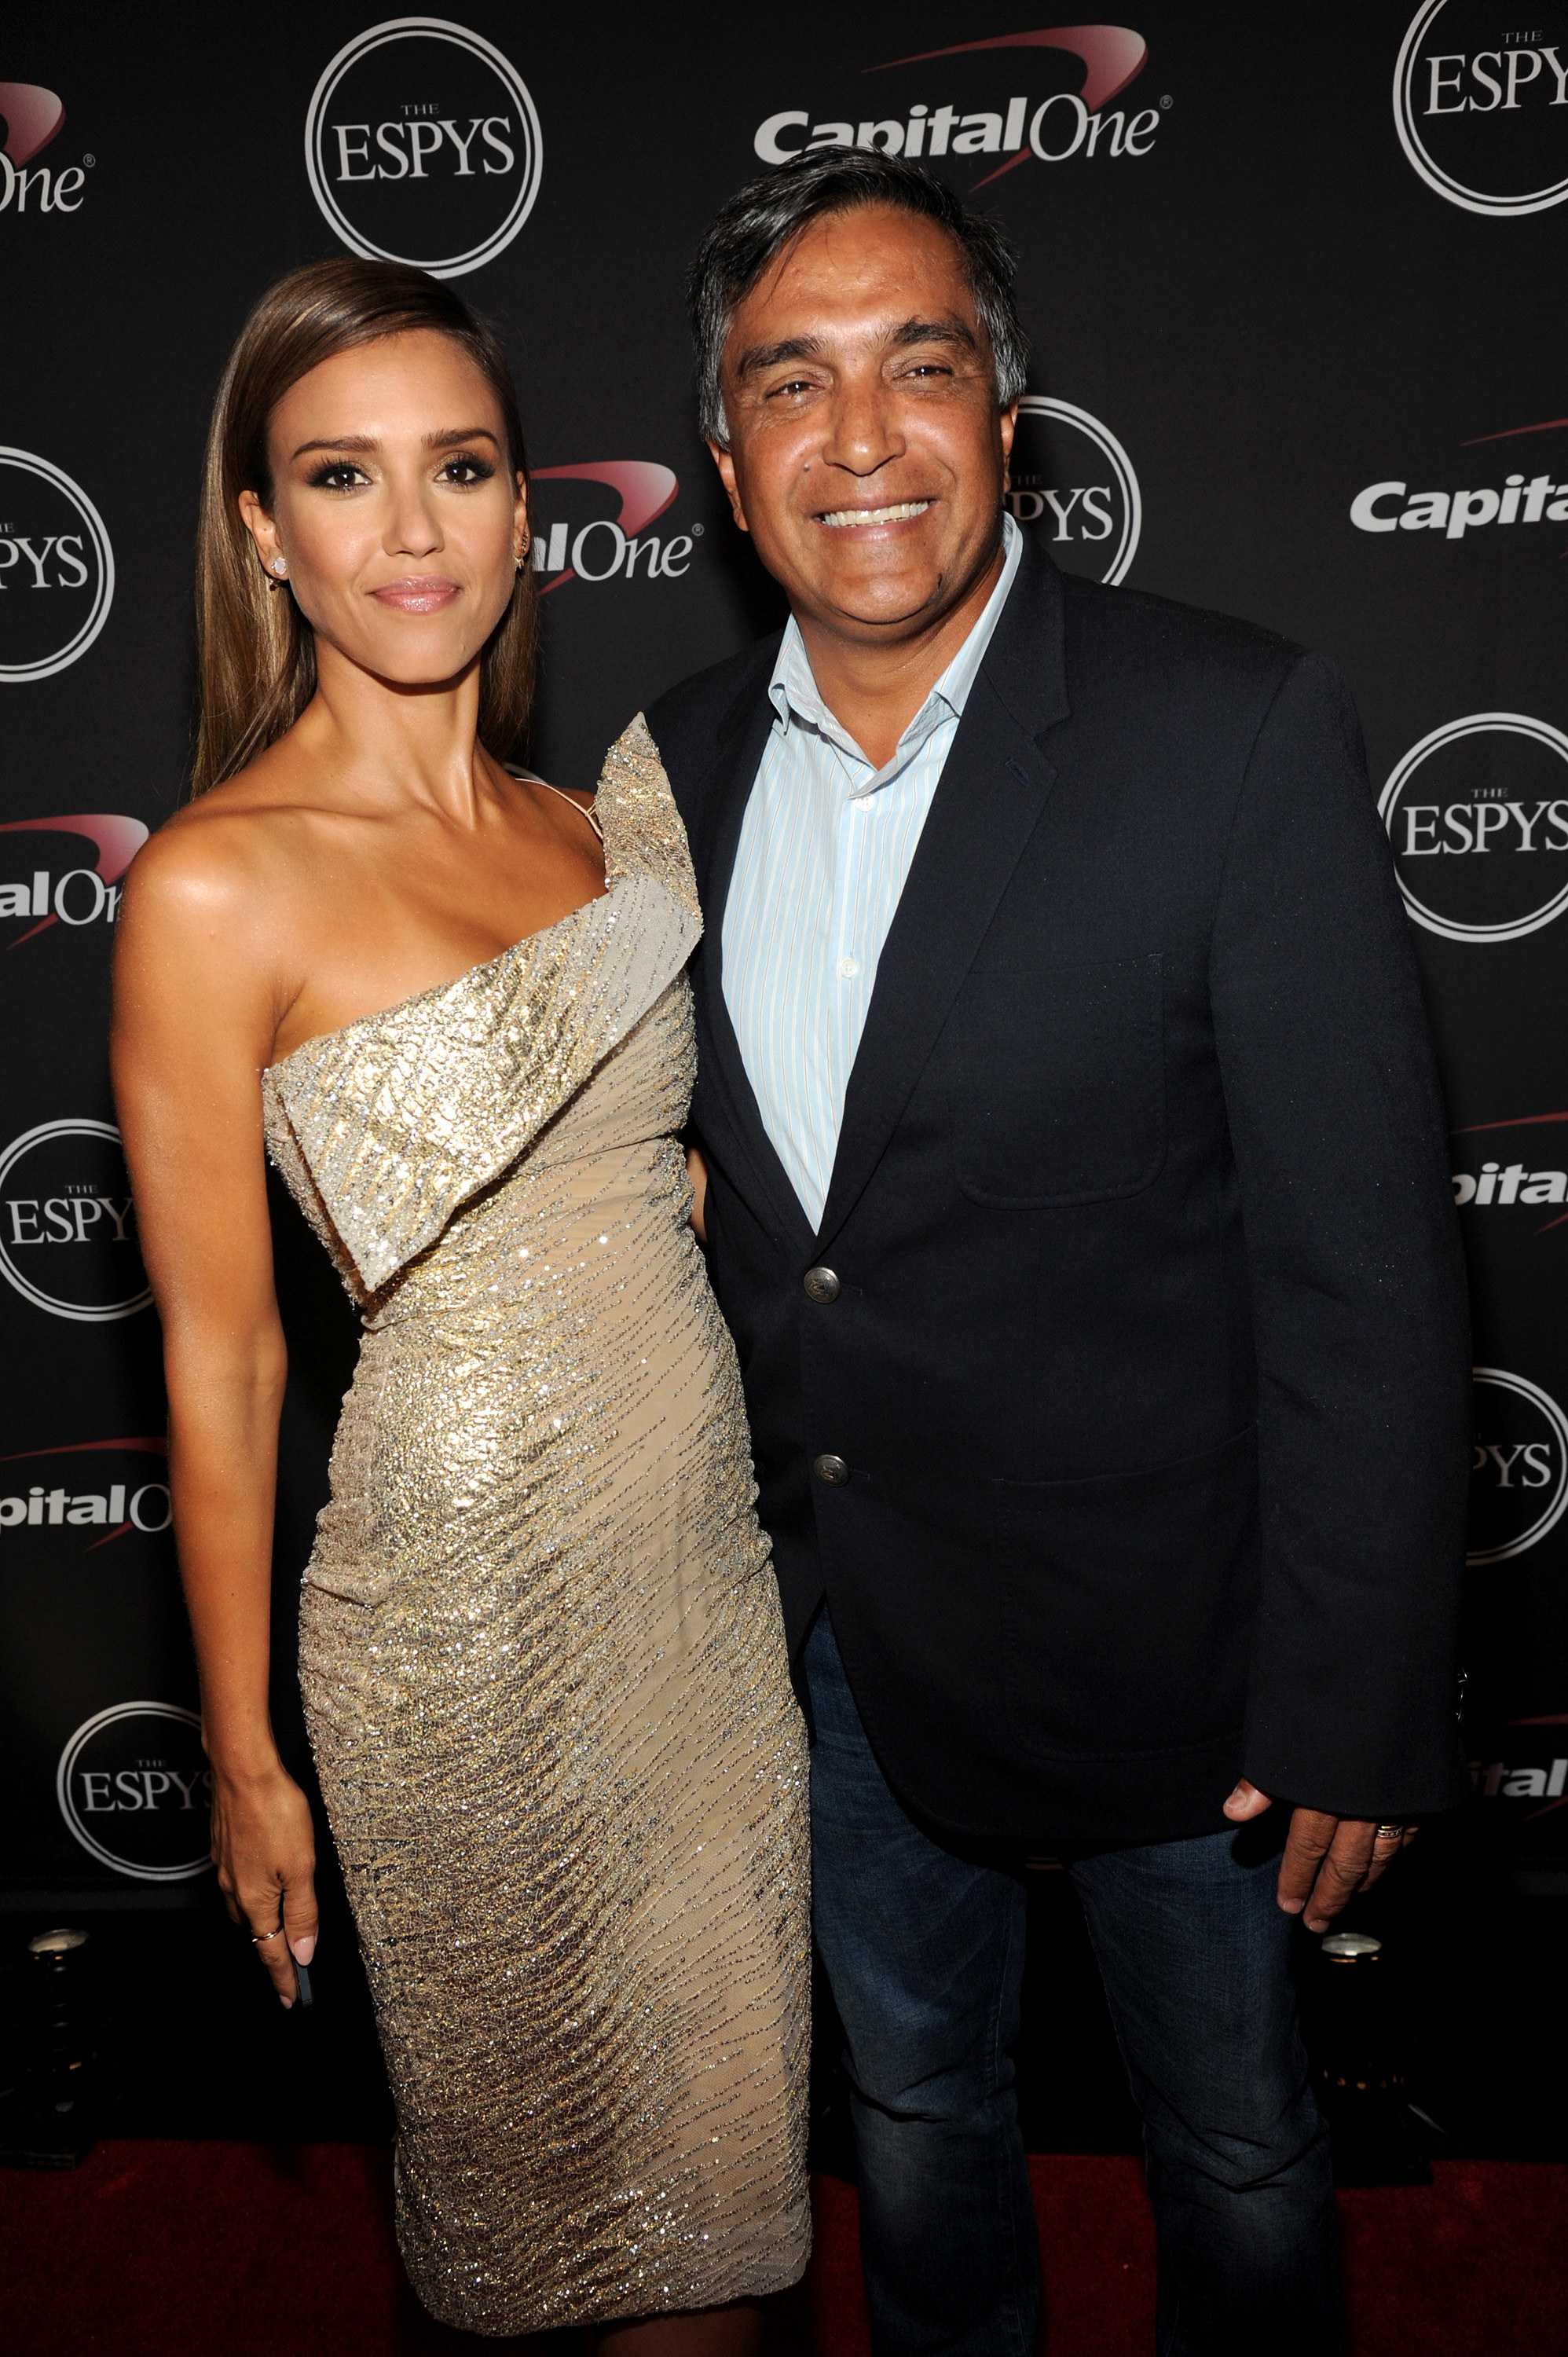 Jessica Alba and her father Mark at the 2014 ESPYs in Los Angeles